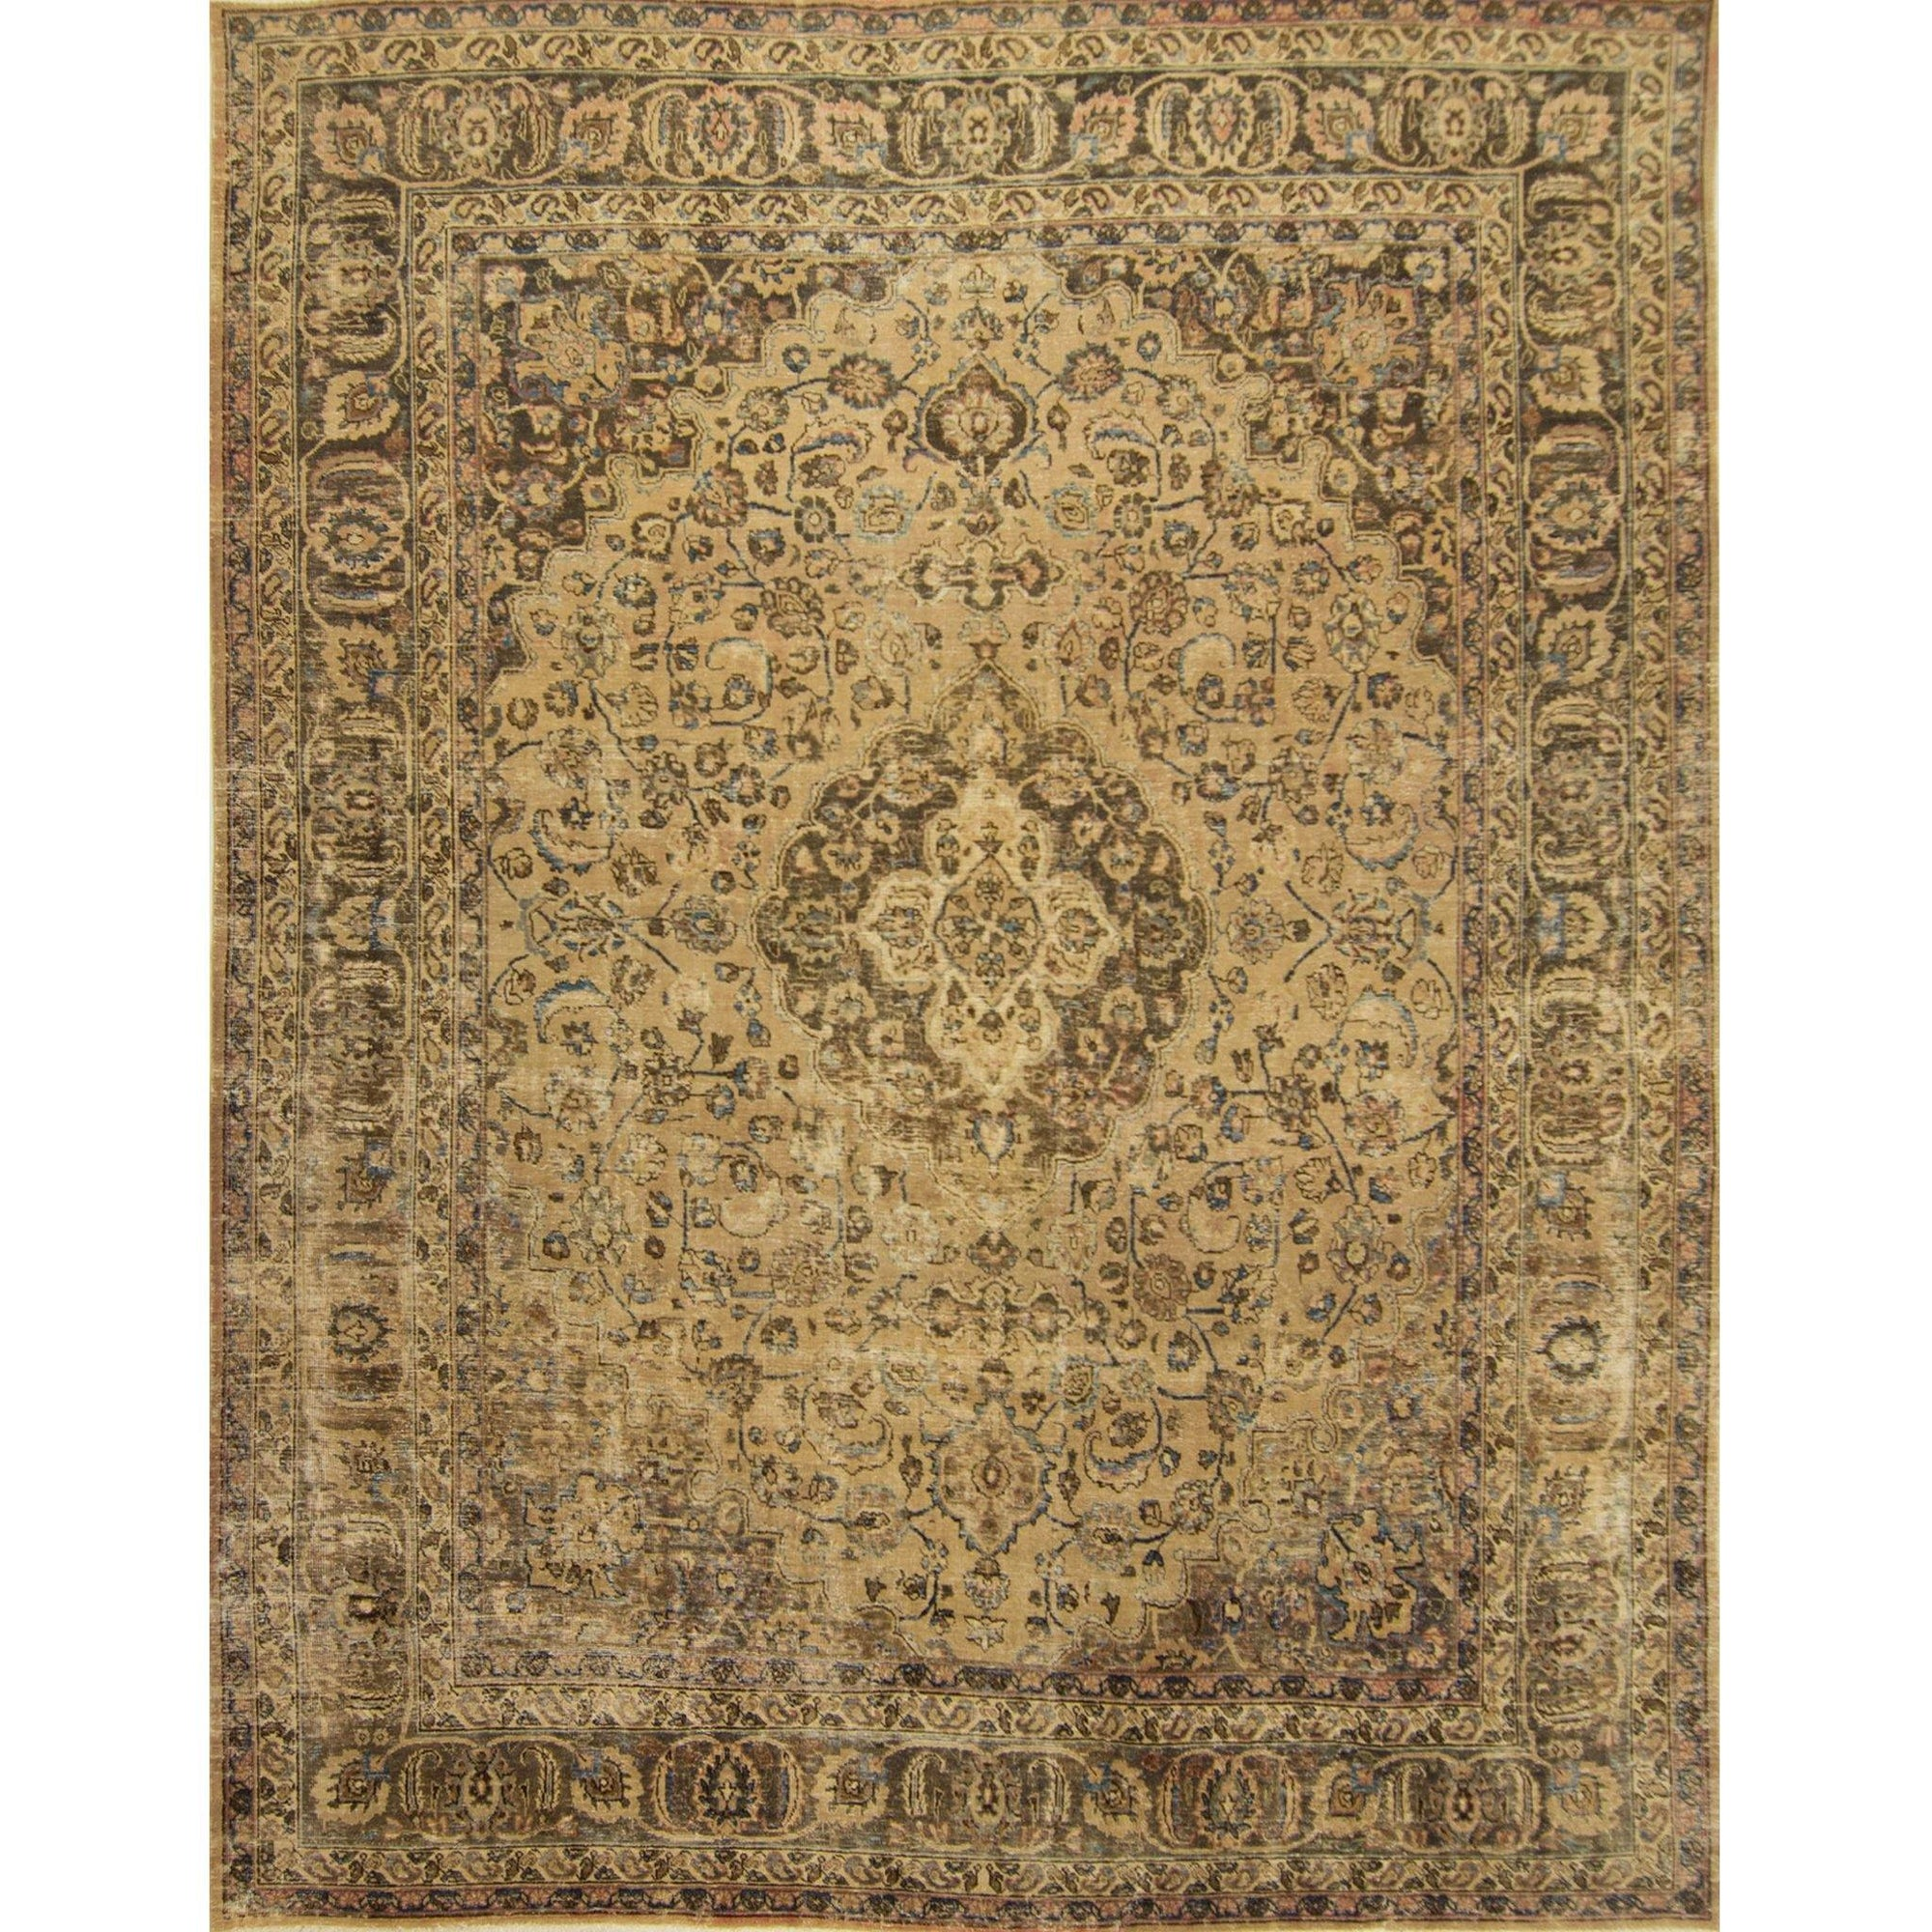 Over-dyed Vintage Persian Rug 300cm x 369cm Persian-Rug | House-of-Haghi | NewMarket | Auckland | NZ | Handmade Persian Rugs | Hand Knotted Persian Rugs